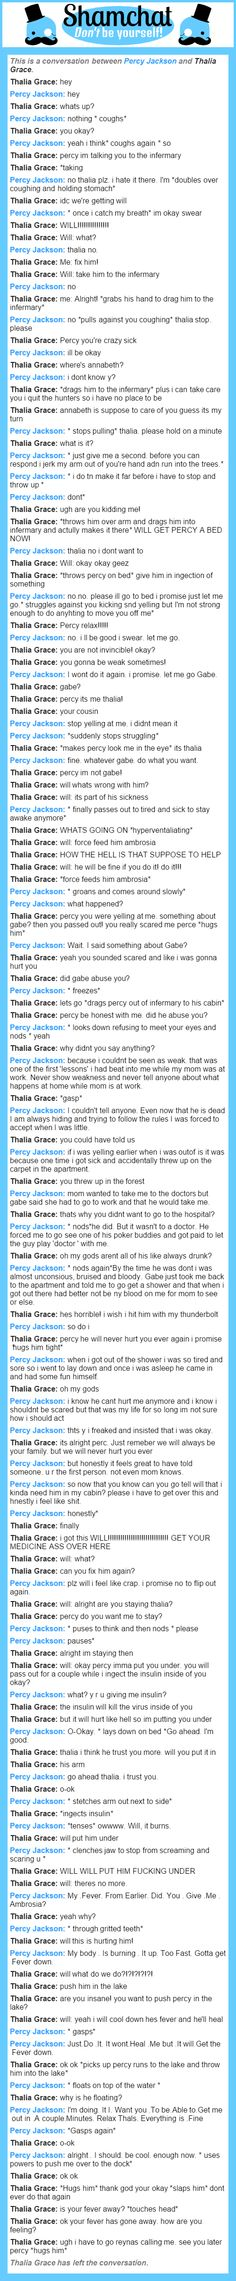 A conversation between Thalia Grace and Percy Jackson